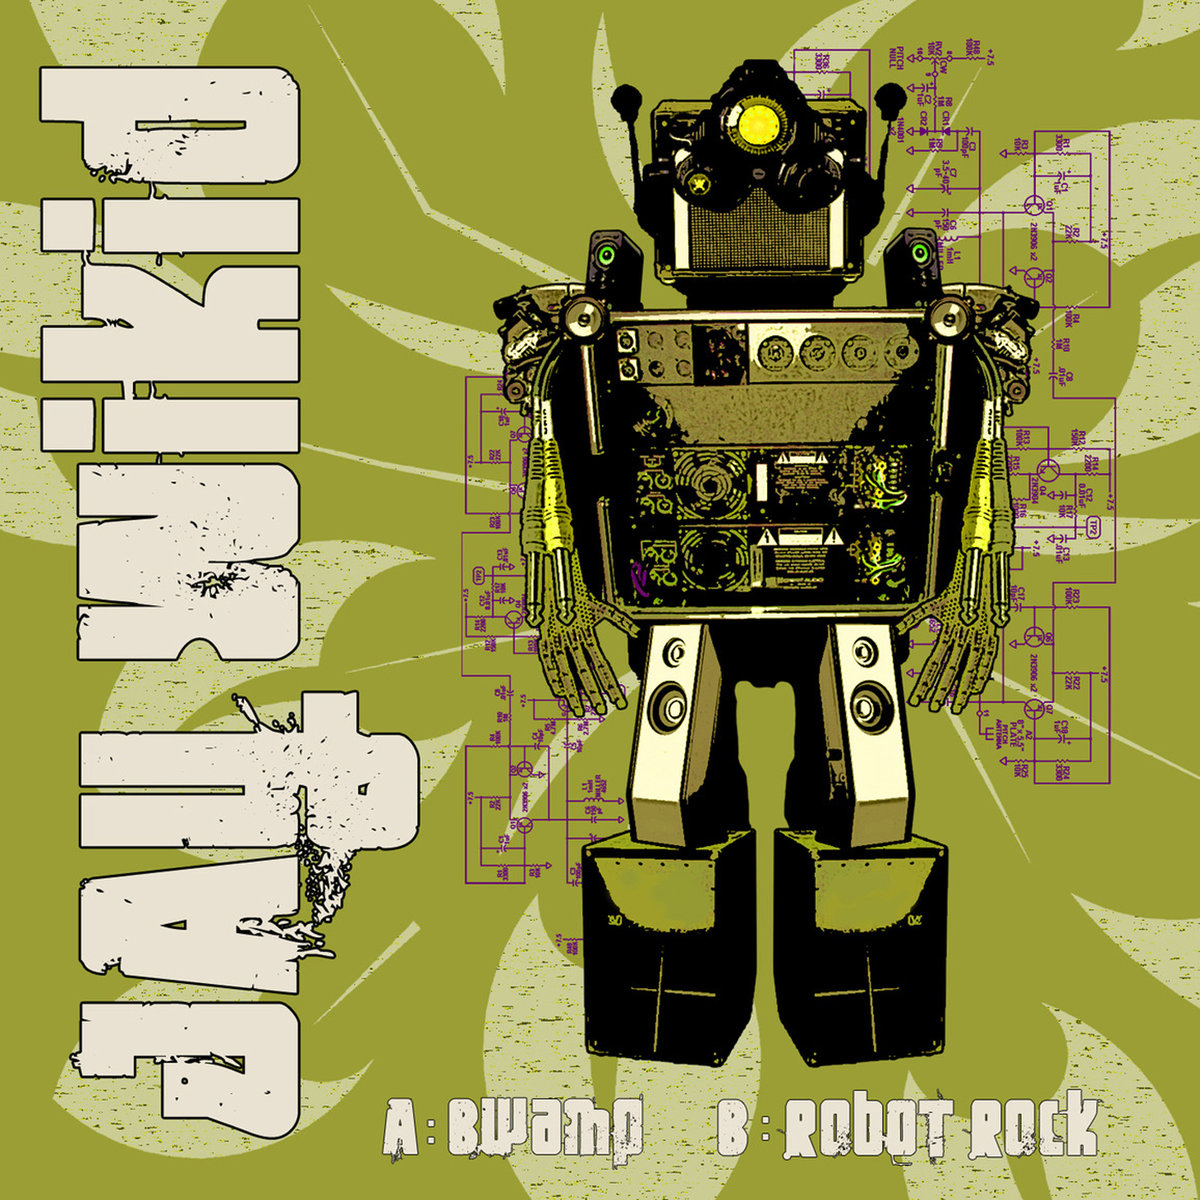 Jay Wikid - Bwamp @ 'Robot Rock' album (bass, breakbeat)